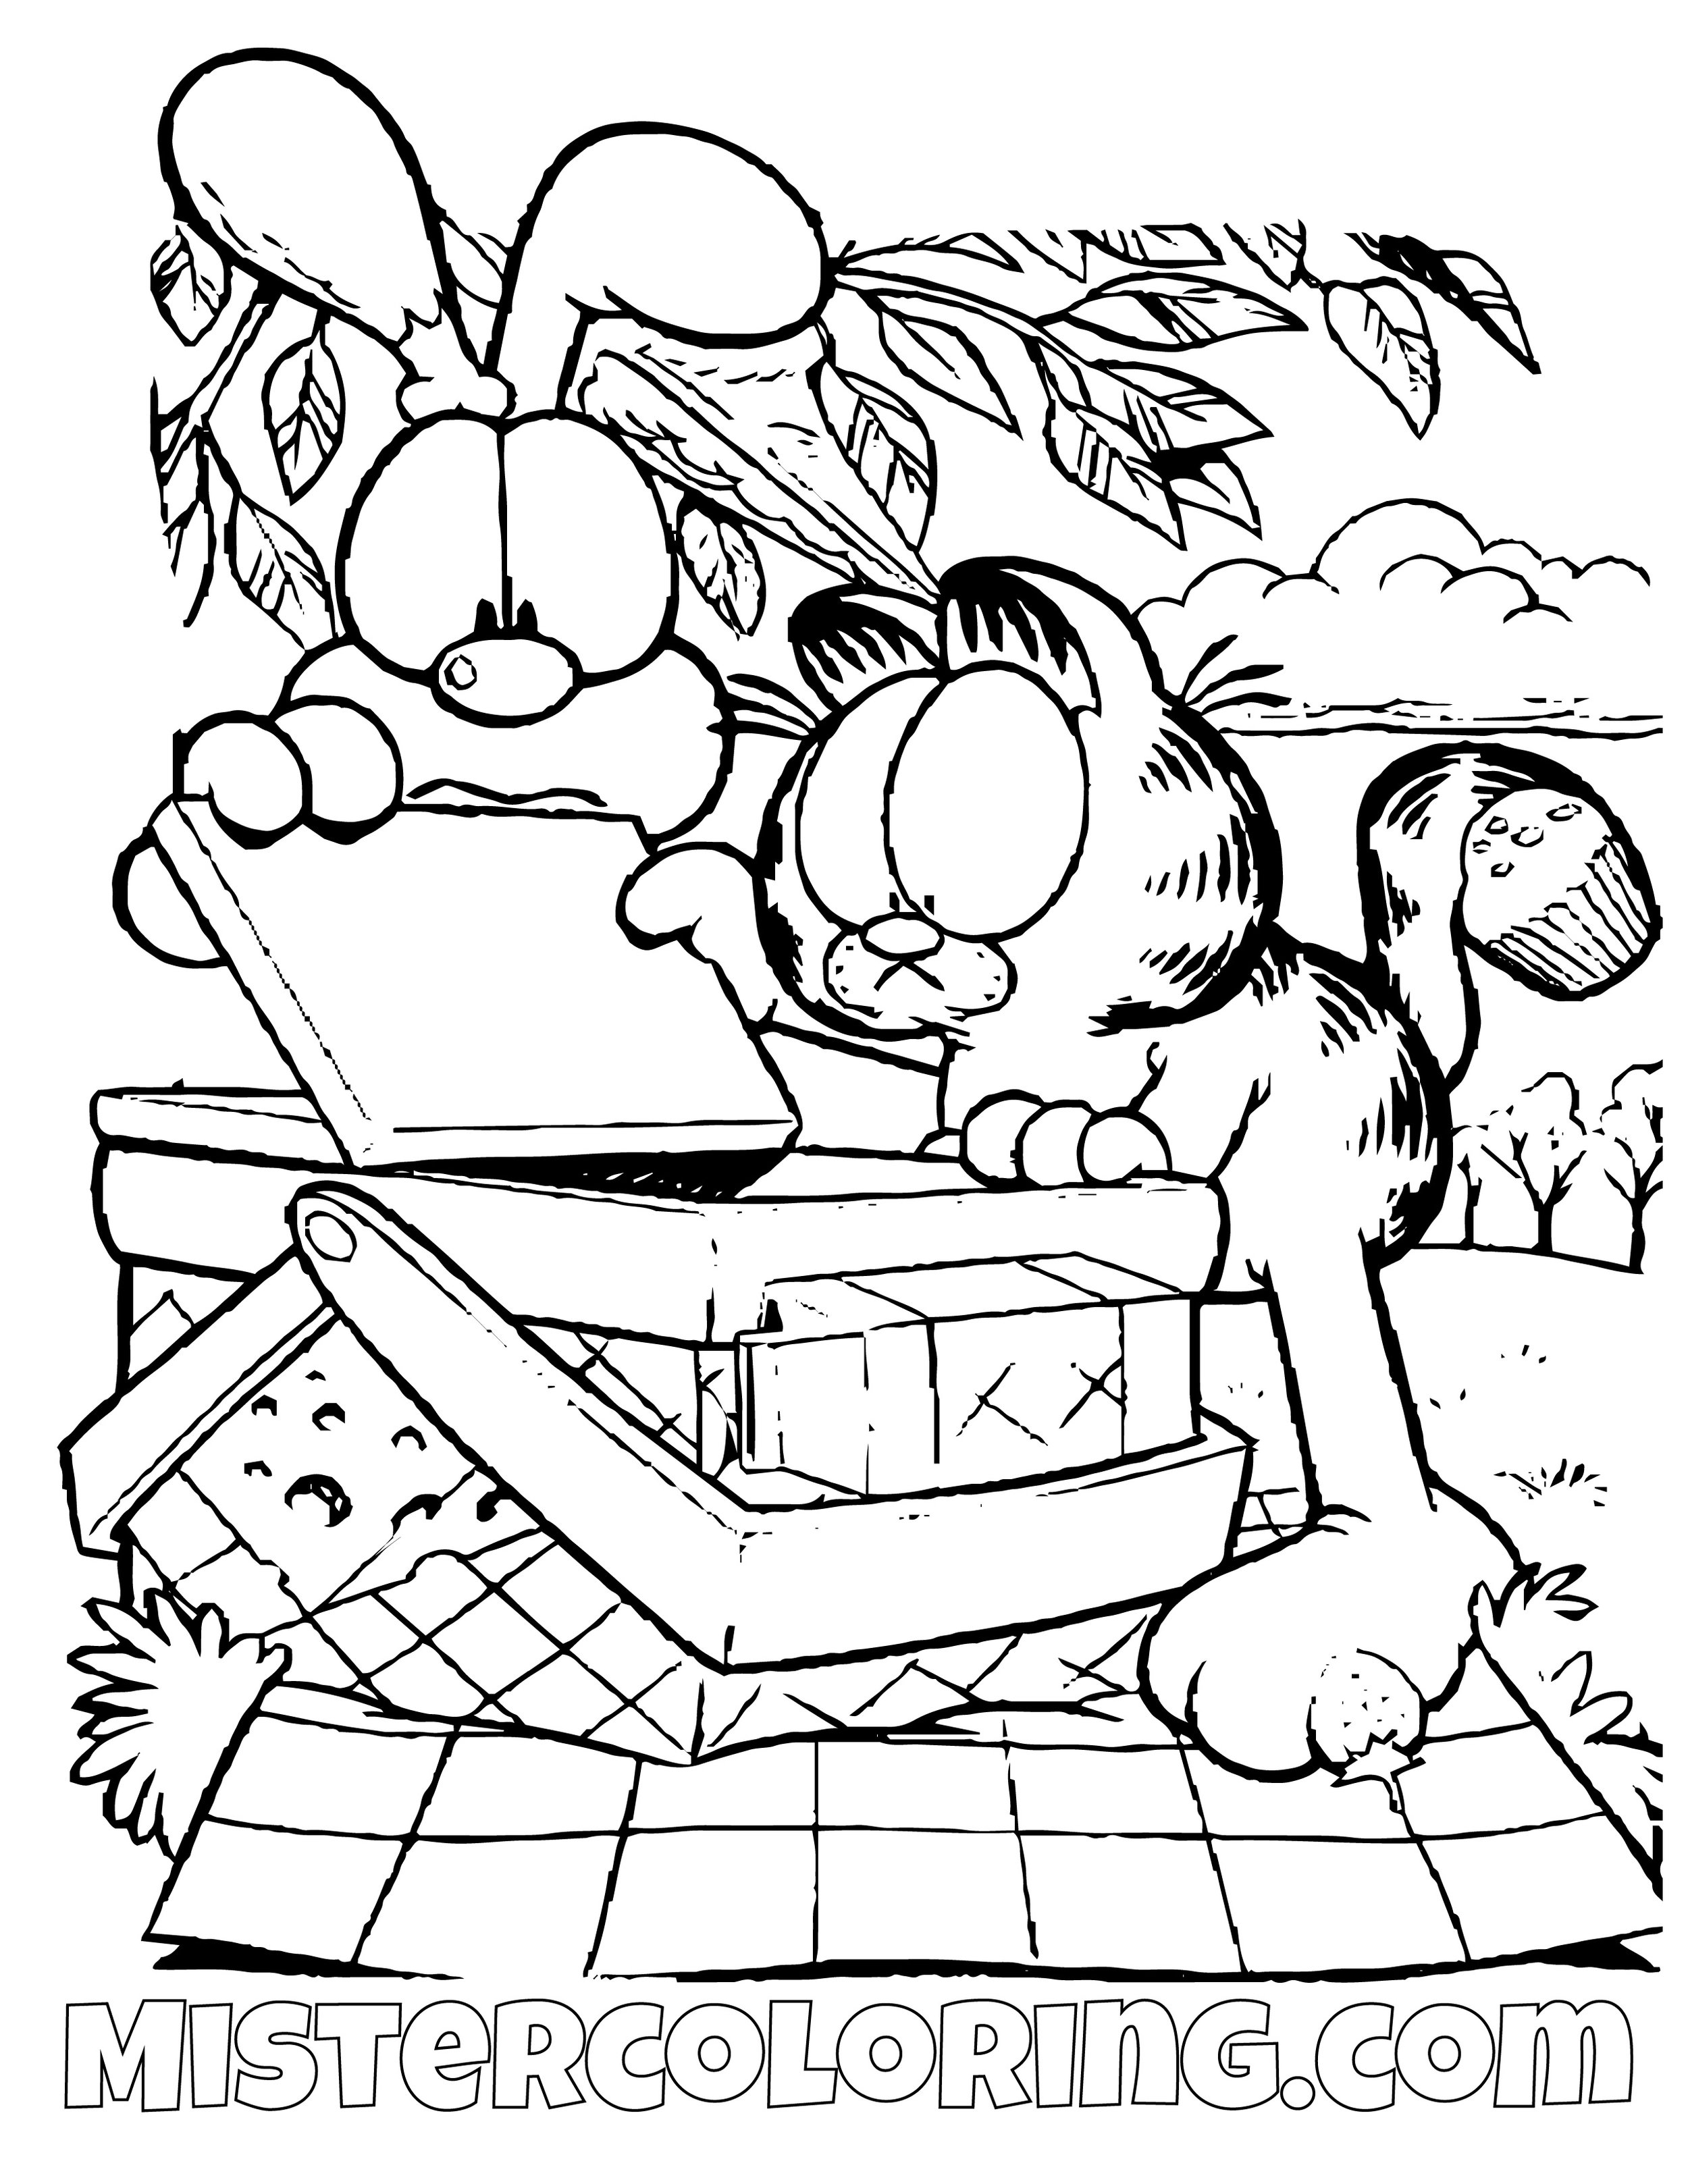 Garfield And Odie Looking Into A Picnic Basket Coloring Page